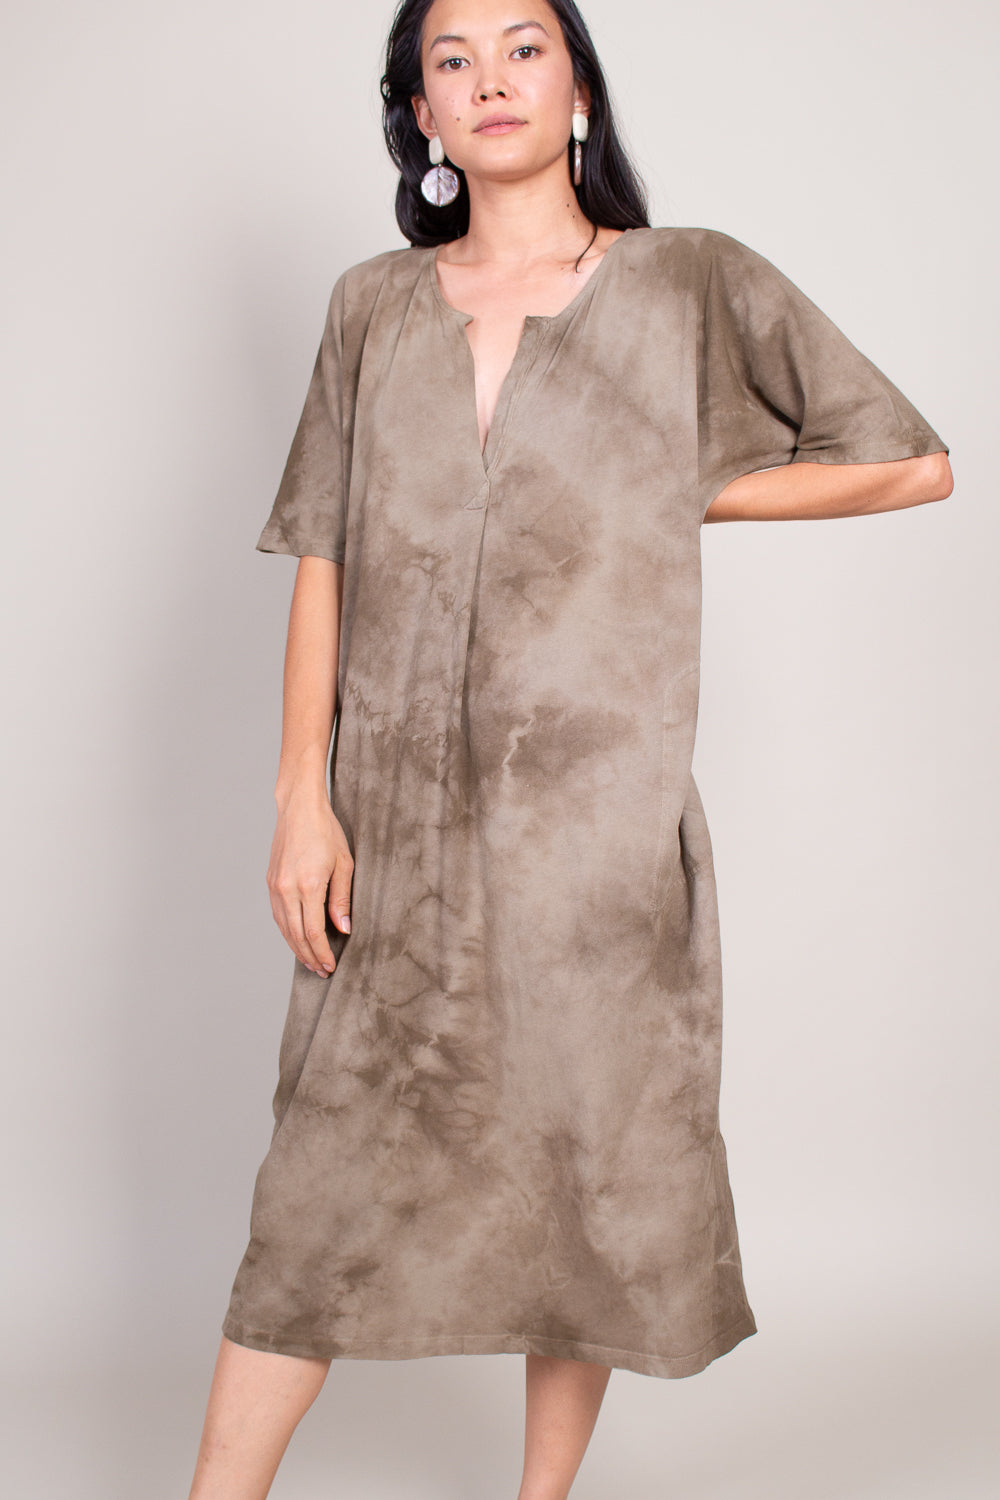 Henley Dress in Army Tie Dye